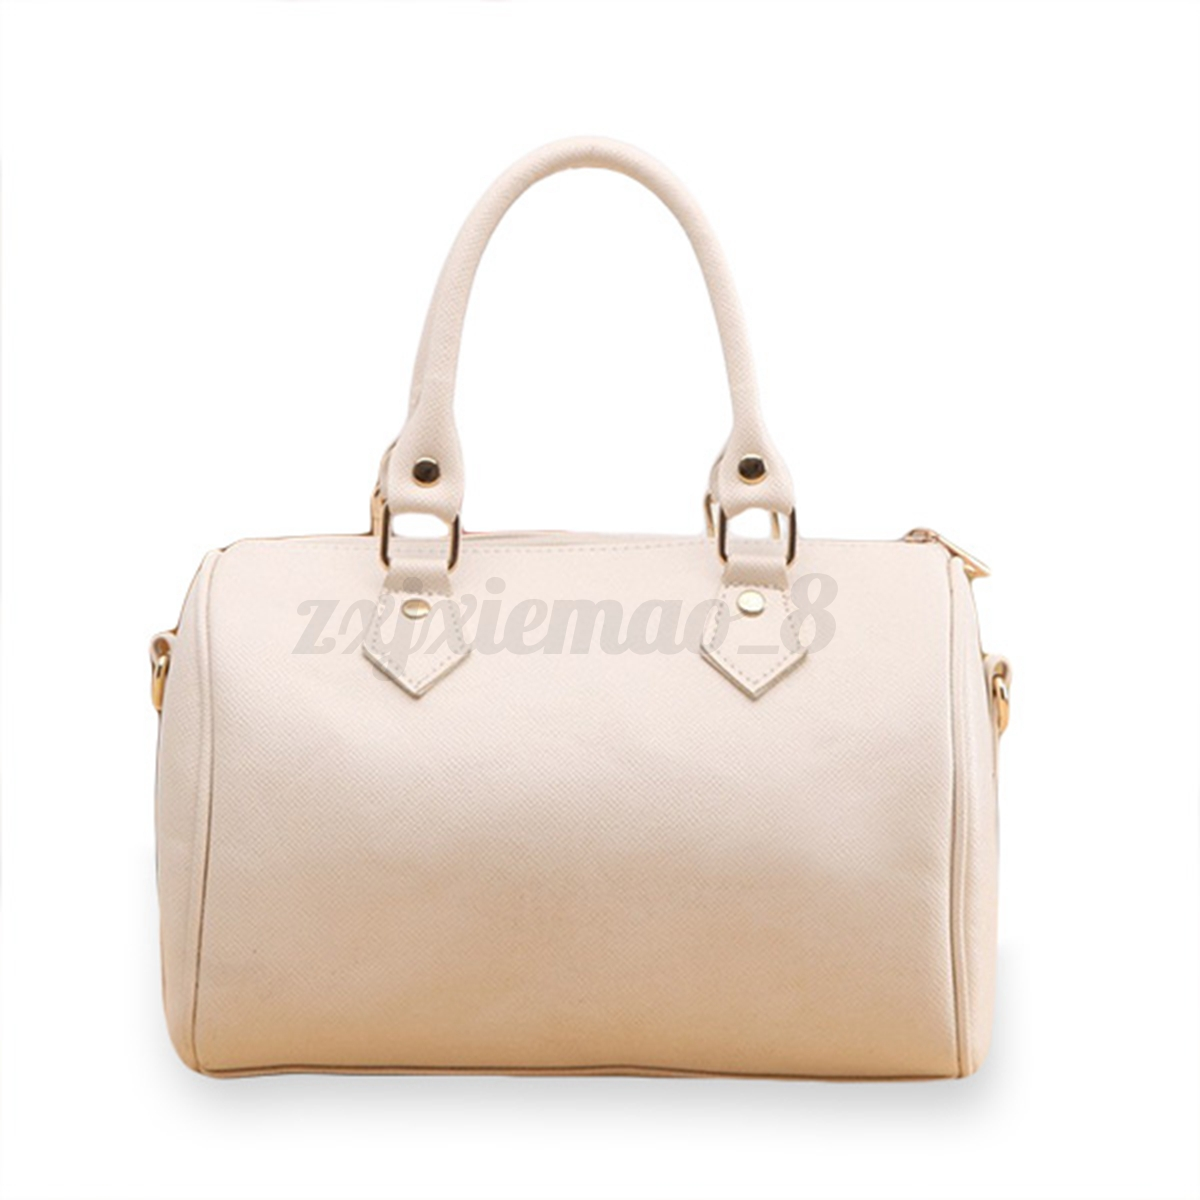 Shop a wide selection of styles and brands of women's handbags at thrushop-06mq49hz.ga Free shipping and free returns on eligible items. From The Community. Amazon Try Prime Shoulder Bags for Women Large Ladies Crossbody Bag with Tassel. from $ 37 90 Prime. out of 5 stars JOYSON.